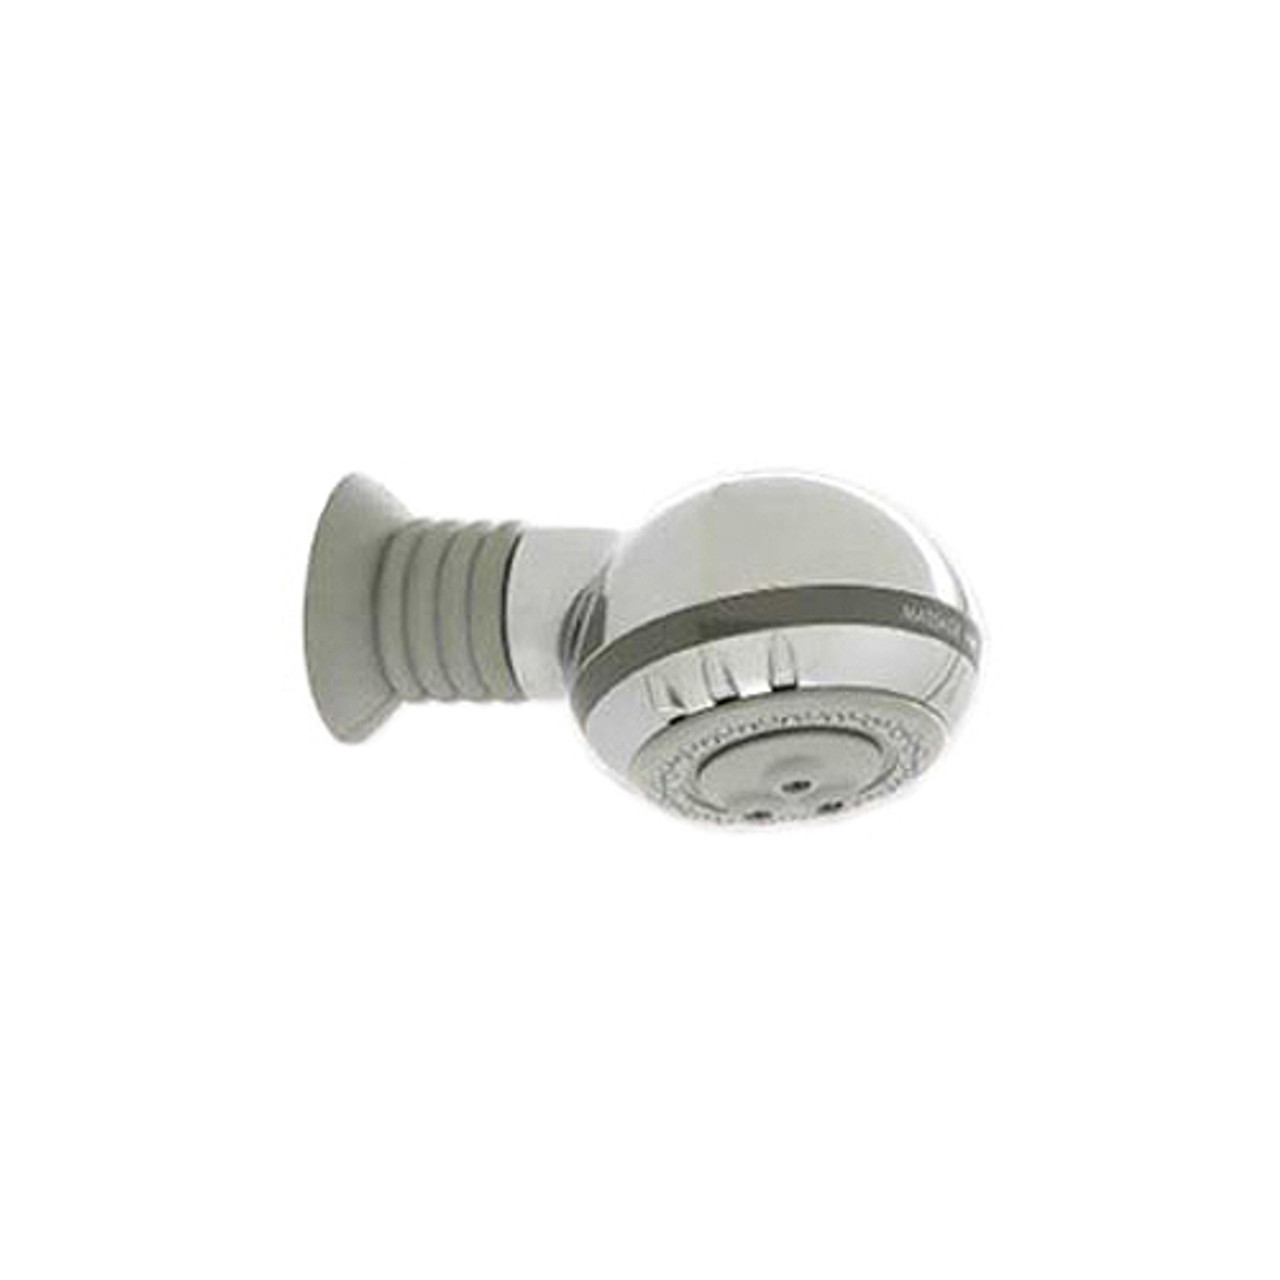 Hansgrohe Interaktiv Chrome 2 Jet Wall Mount Showerhead